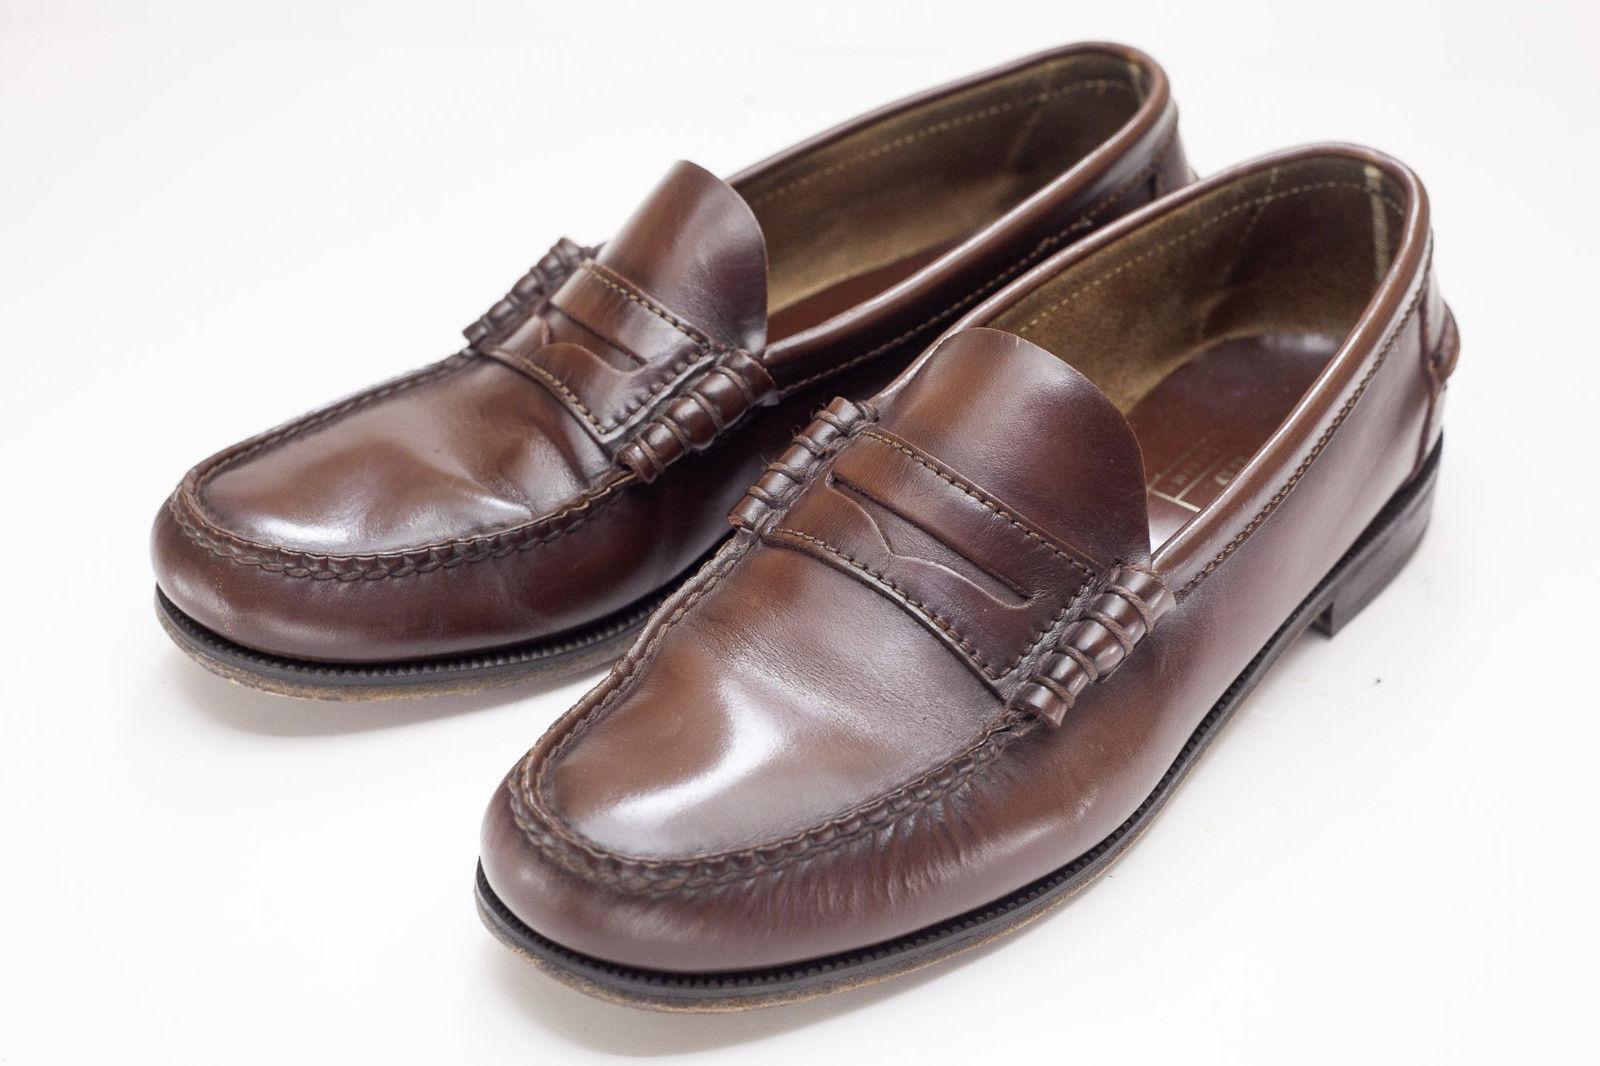 26a8bd8b970 Florsheim 9 Brown Penny Loafer Mens Dress and 50 similar items. 57